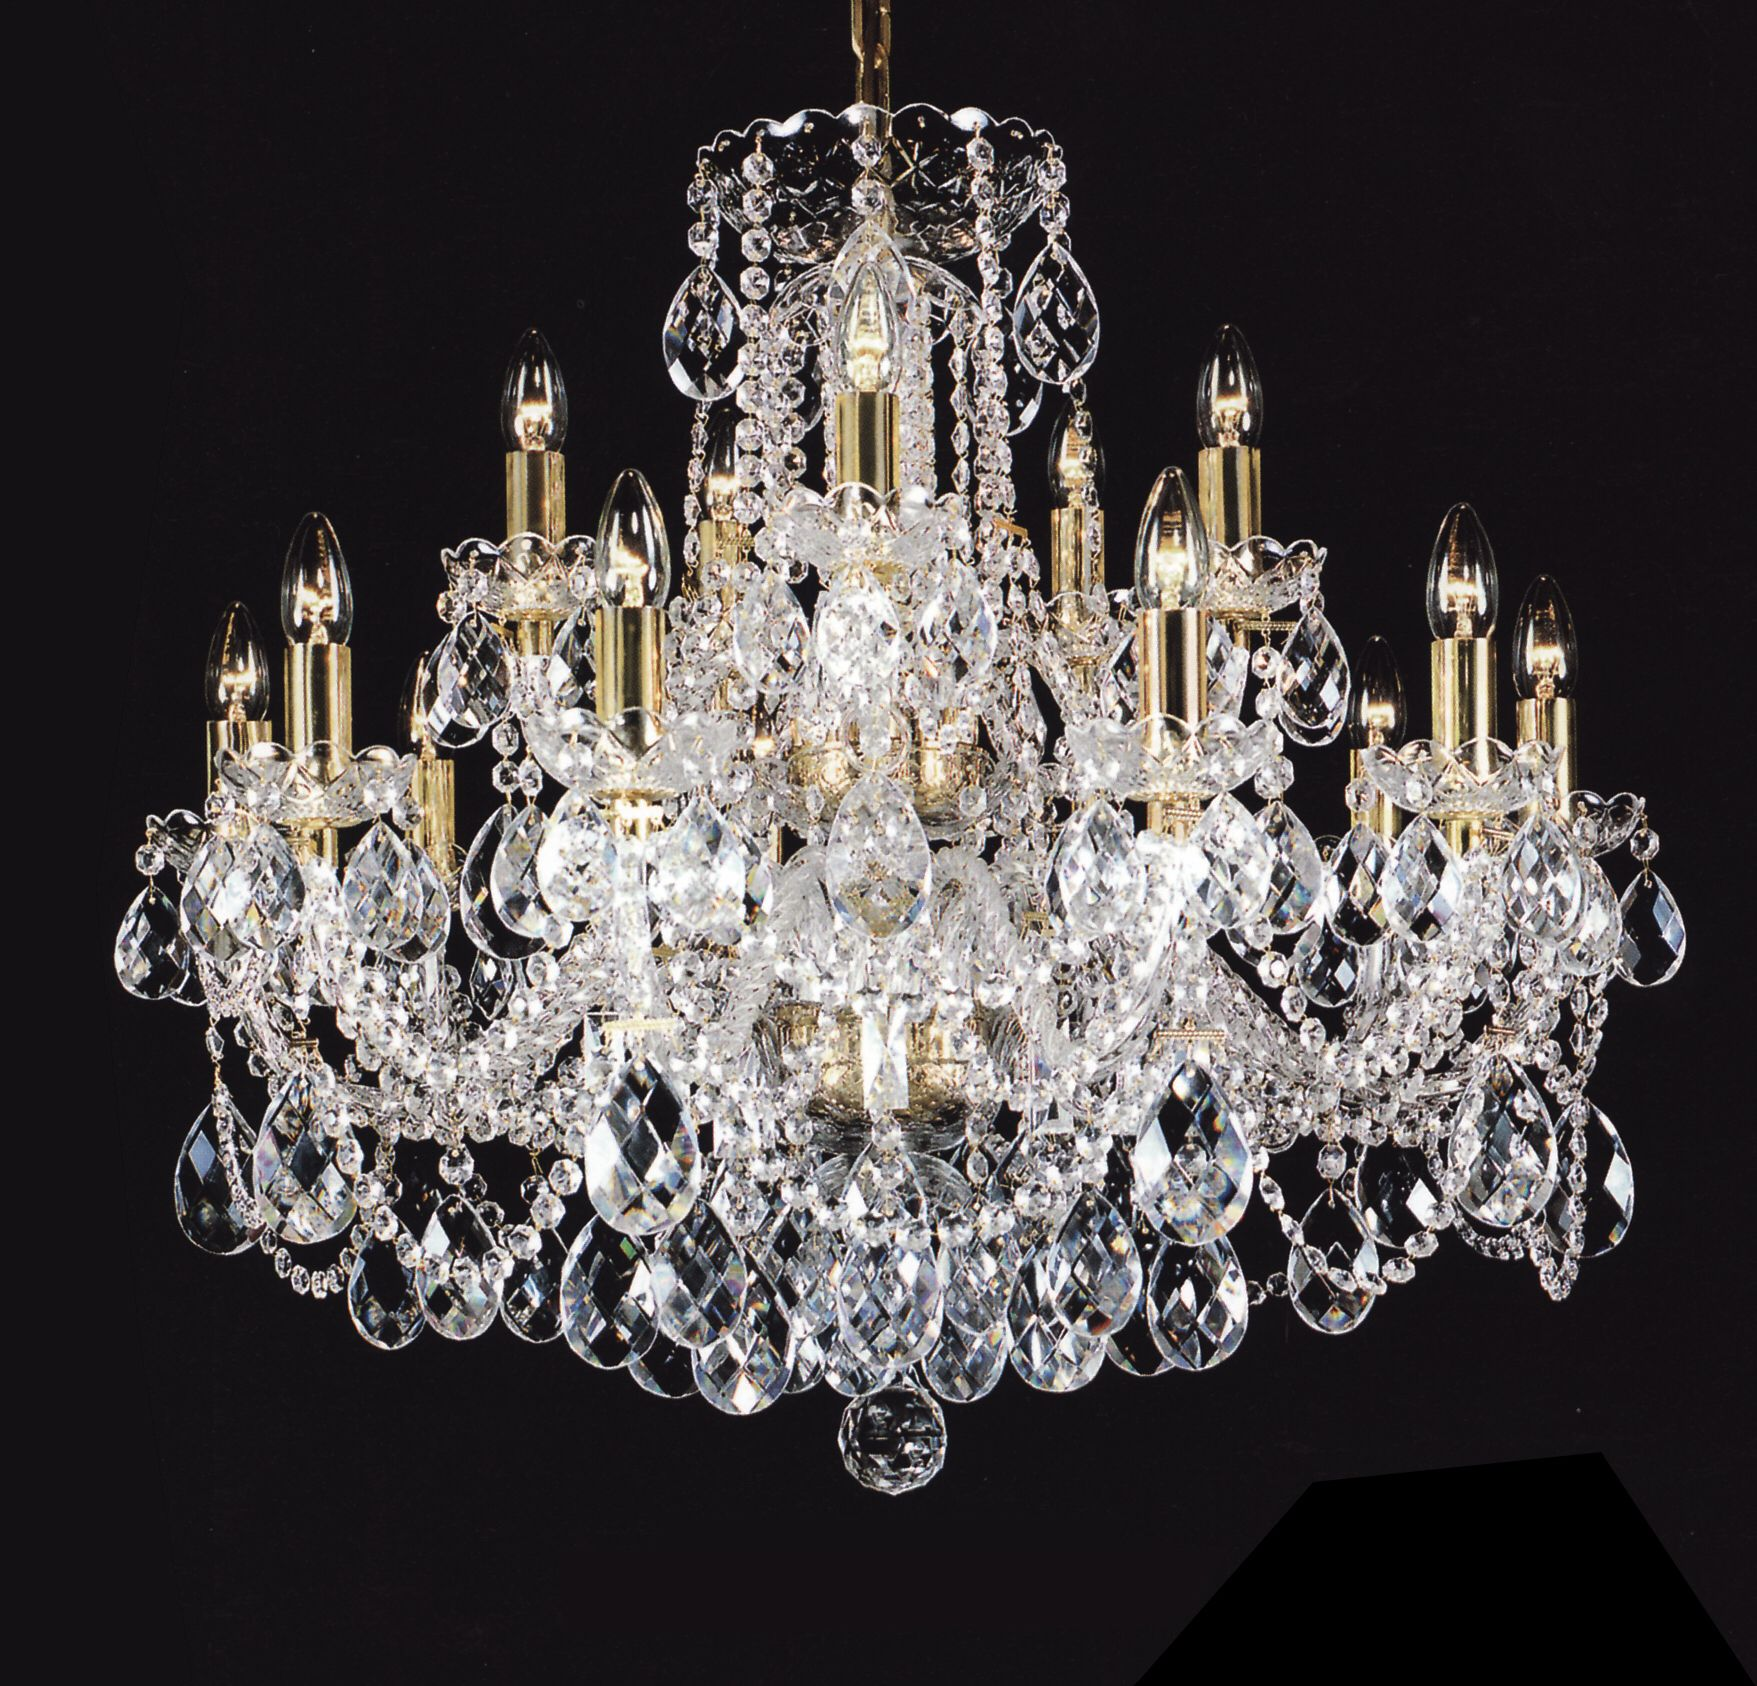 bathroom ideas images shiny nt light up my world chandelier 10427